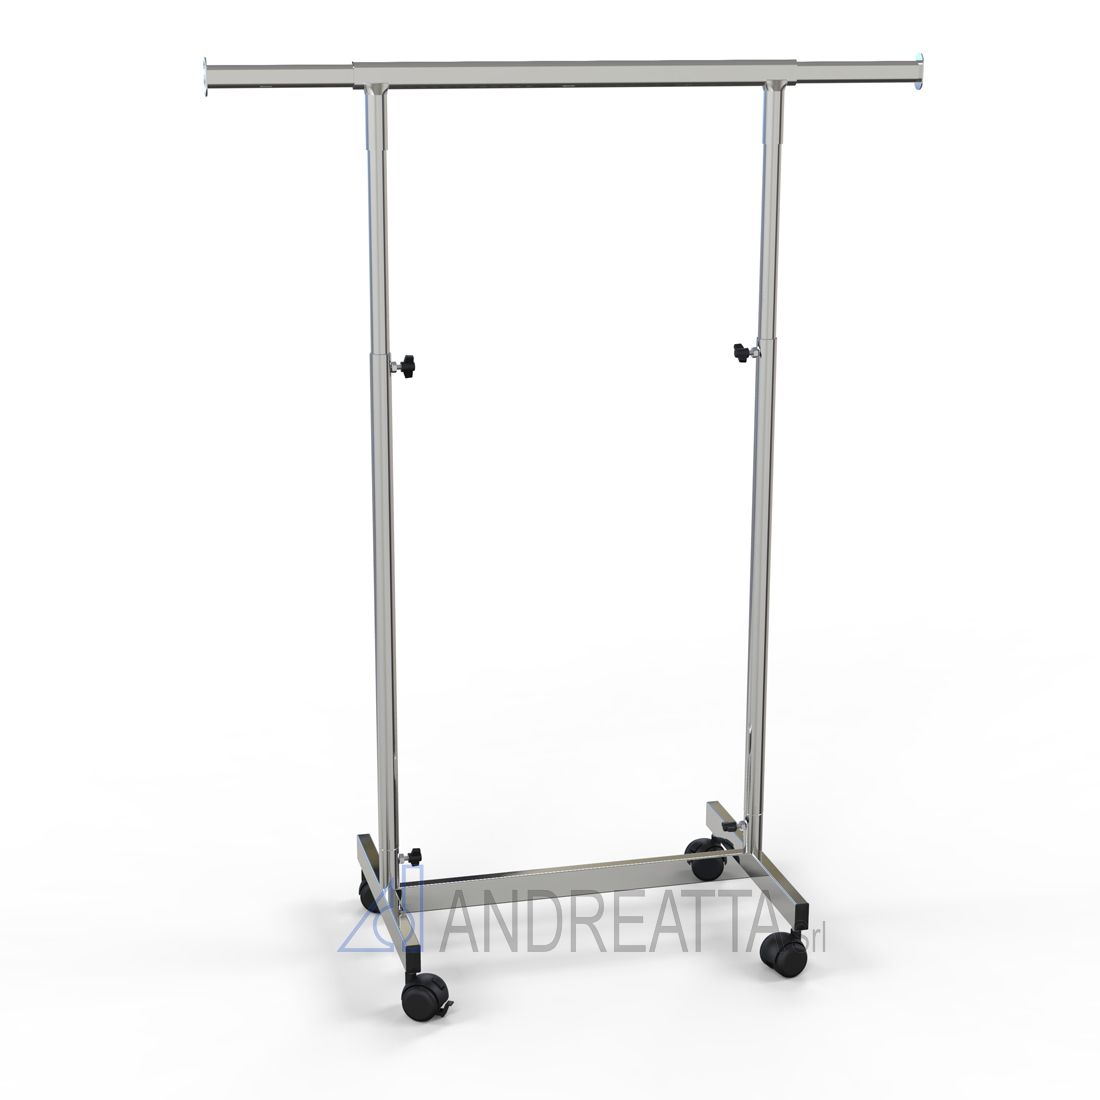 Small Garment rail Adjustable in height